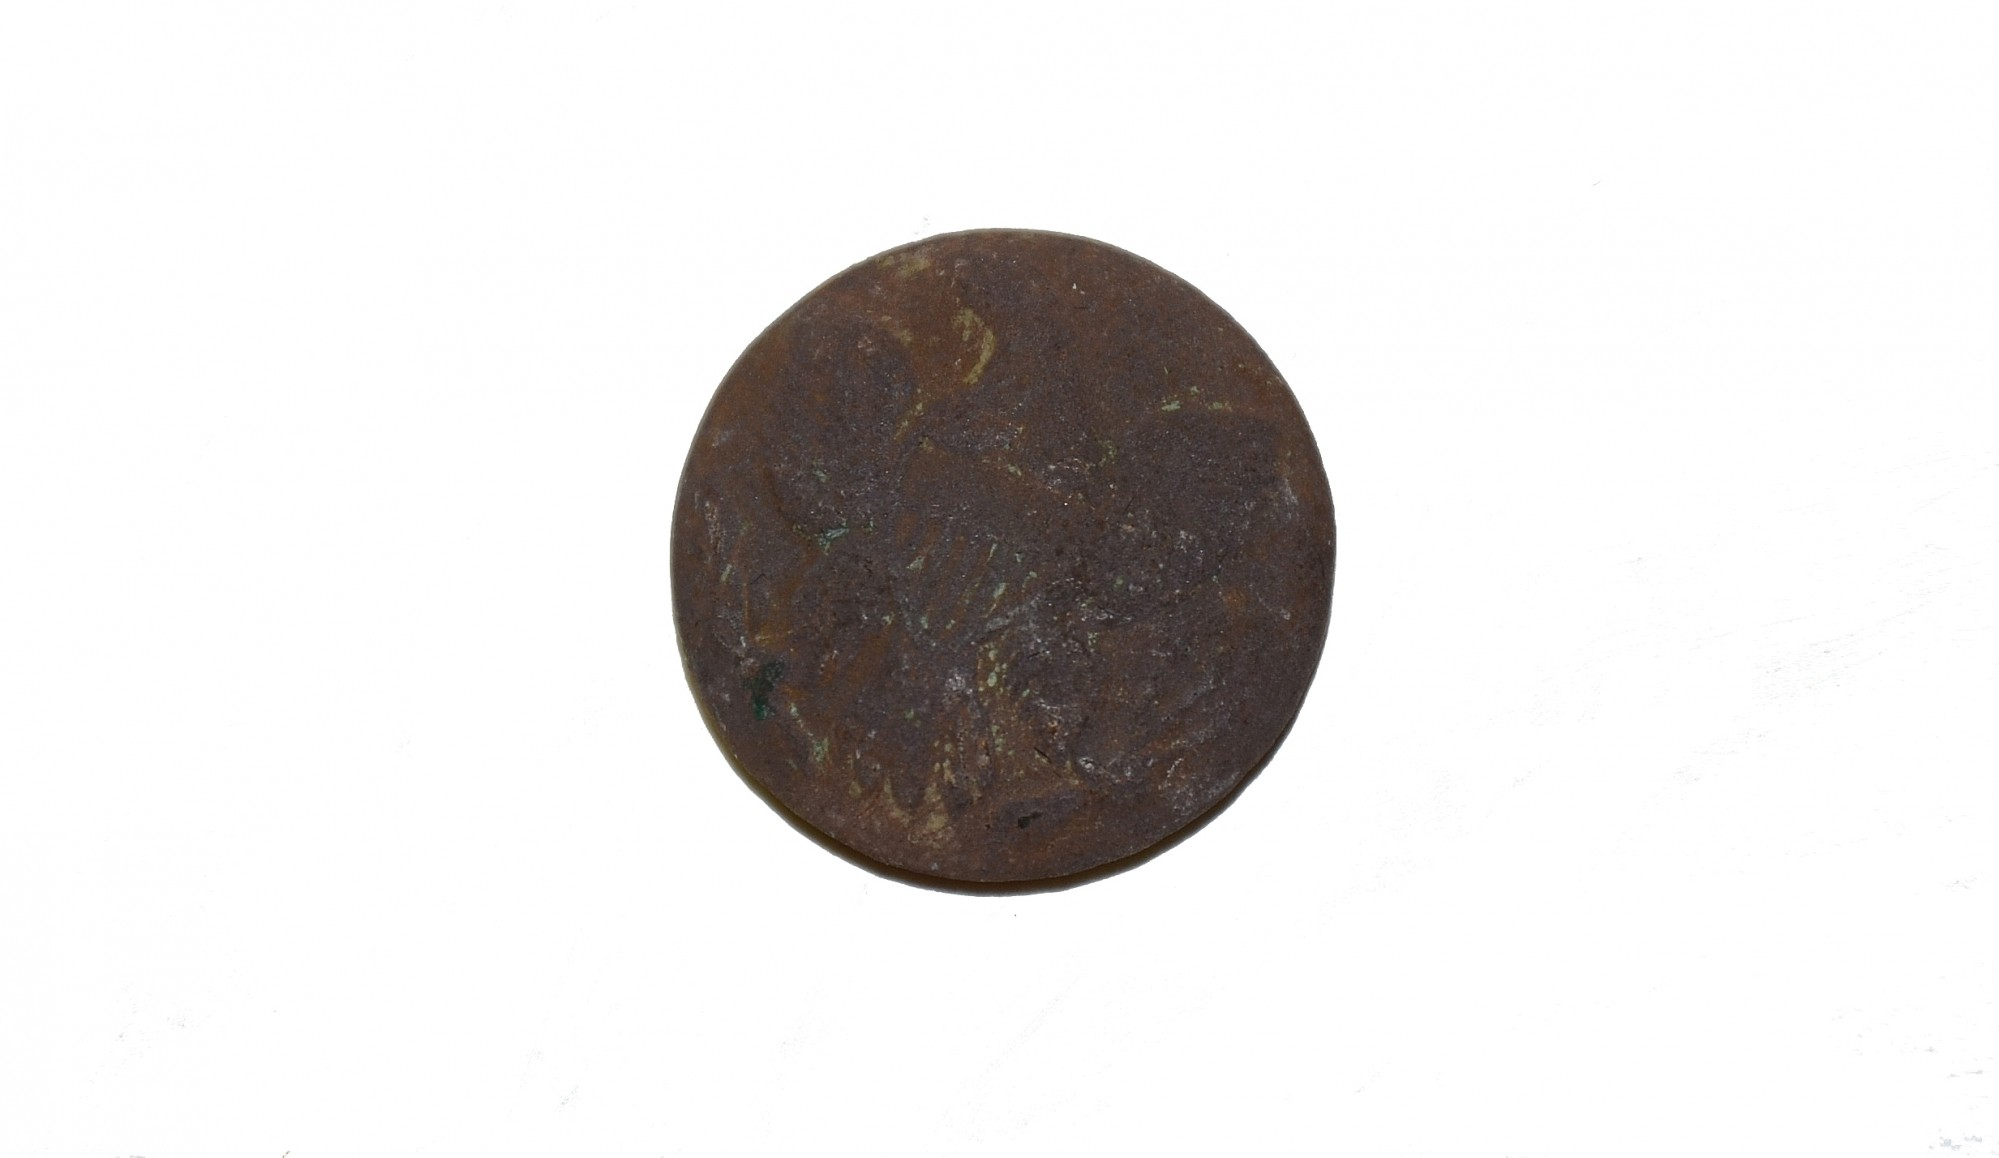 PATTERN 1854 GENERAL SERVICE ENLISTED BUTTON